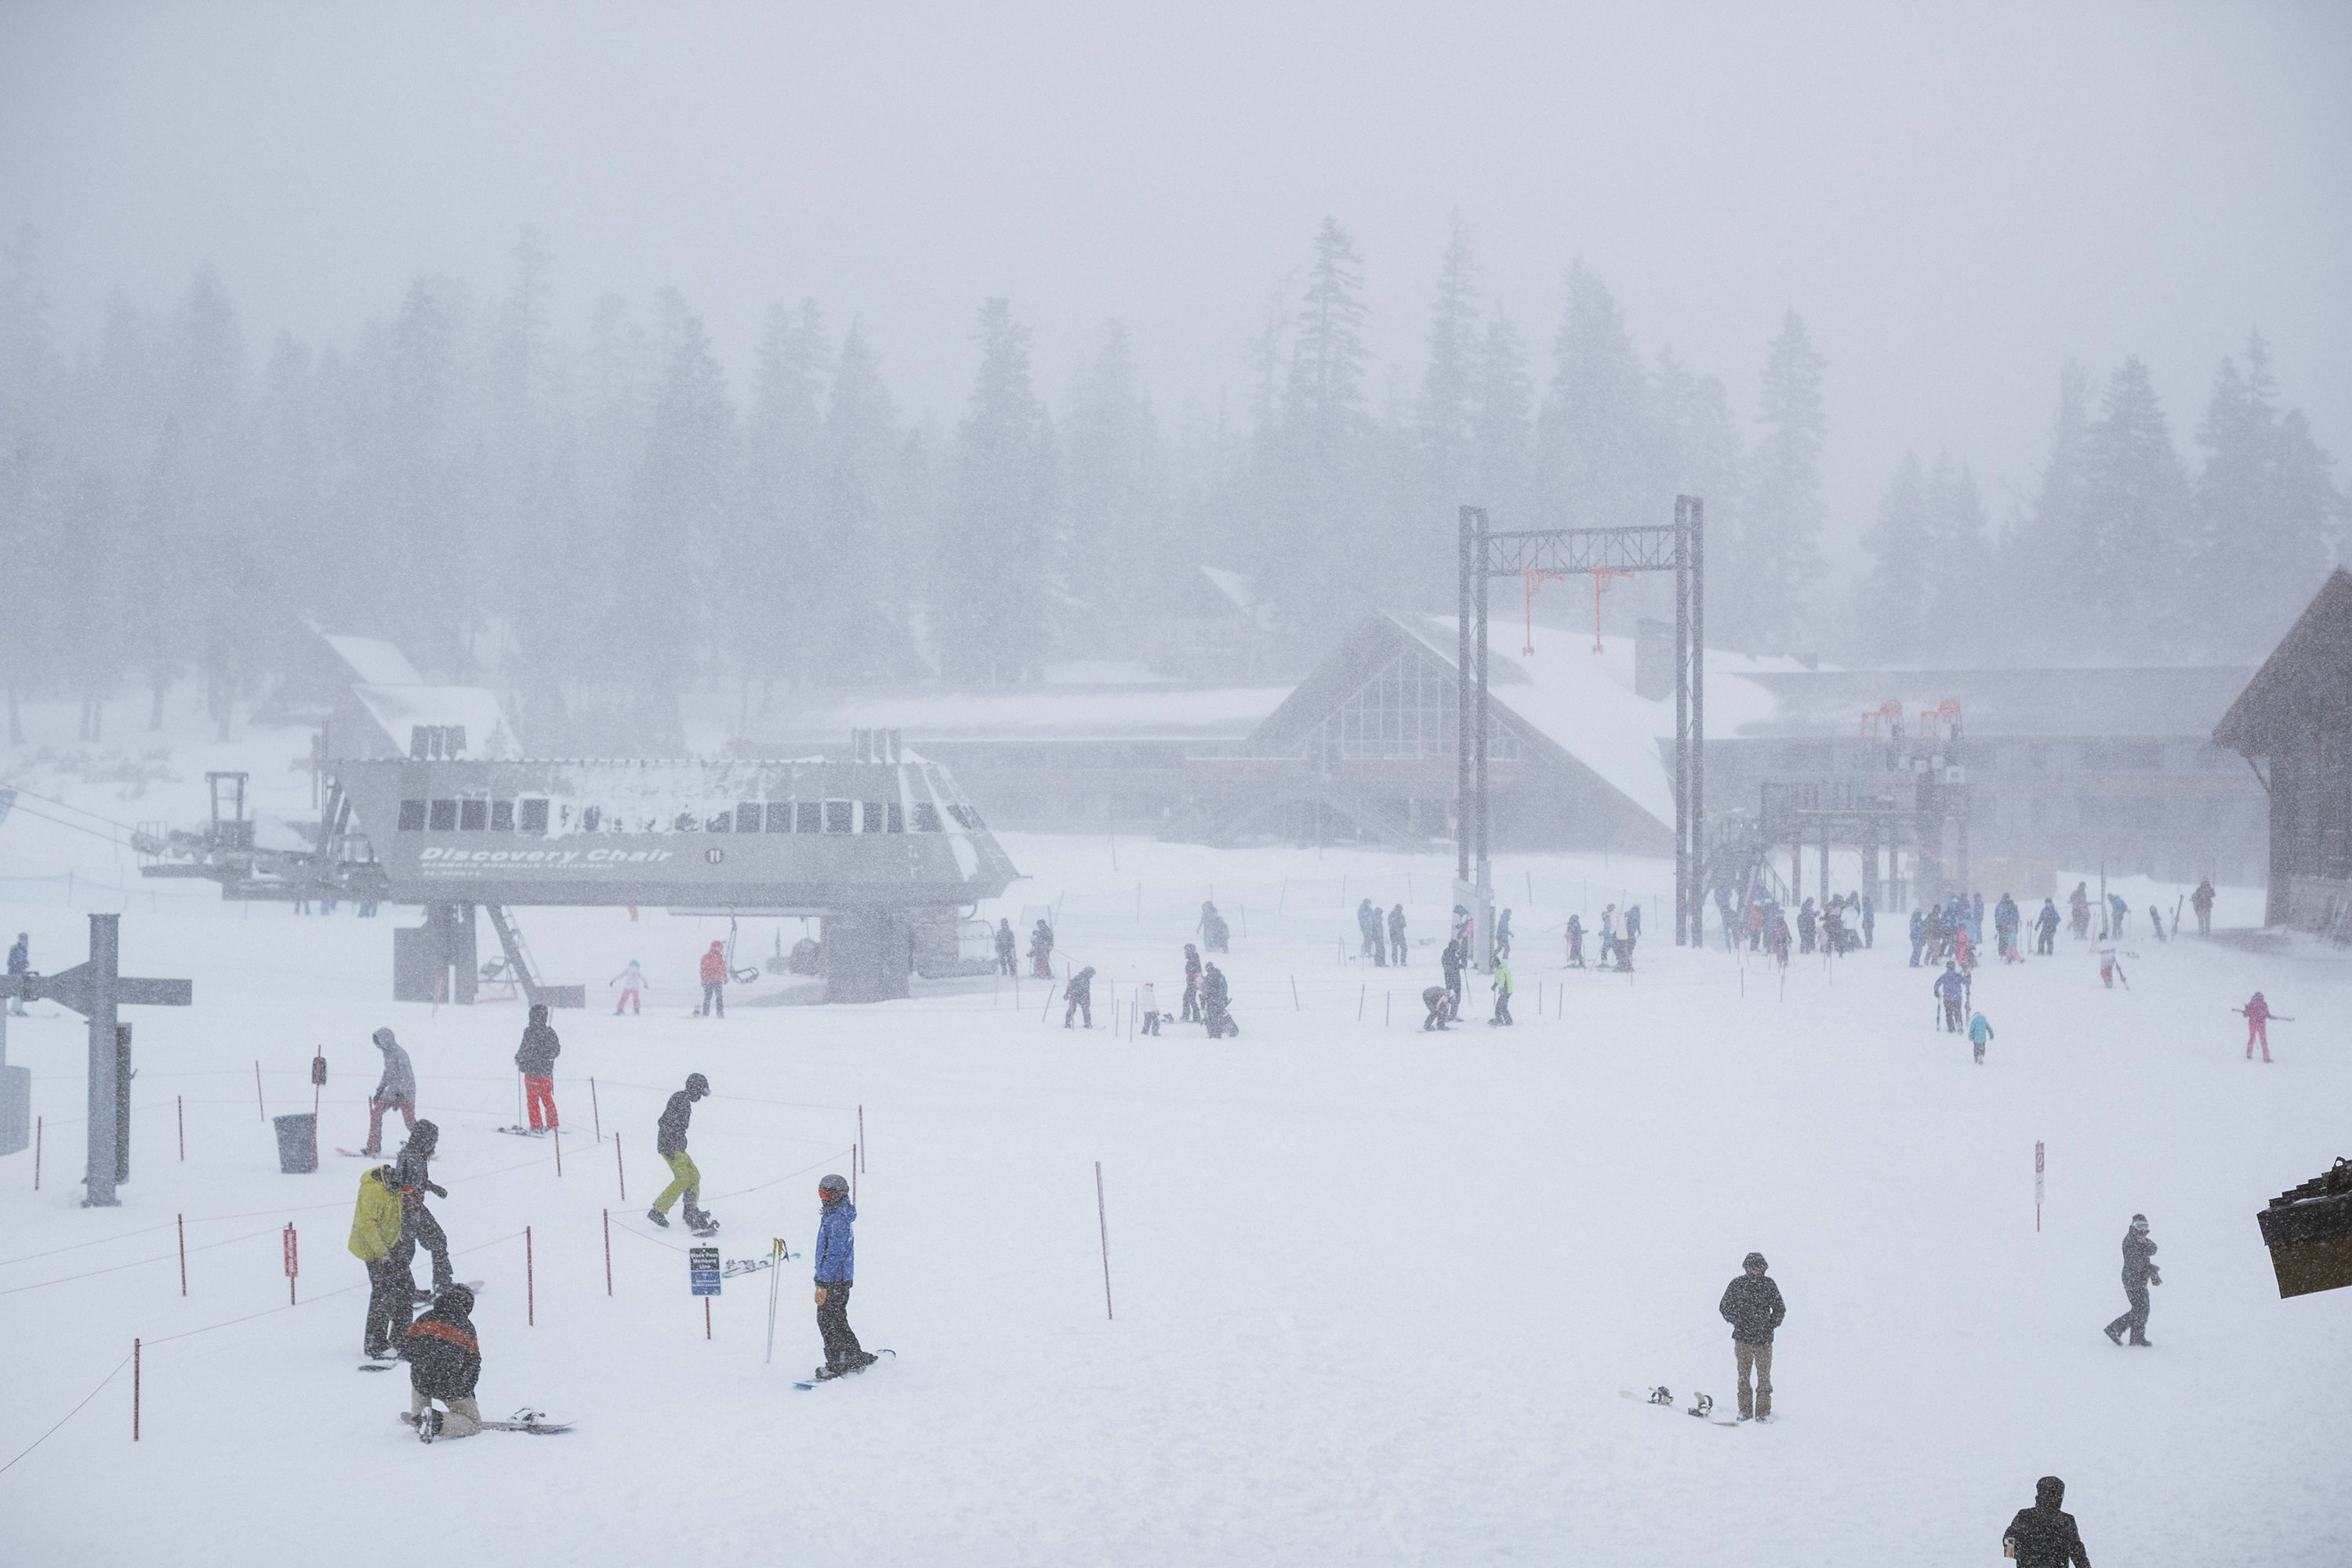 Skiers and snowboarders in California.